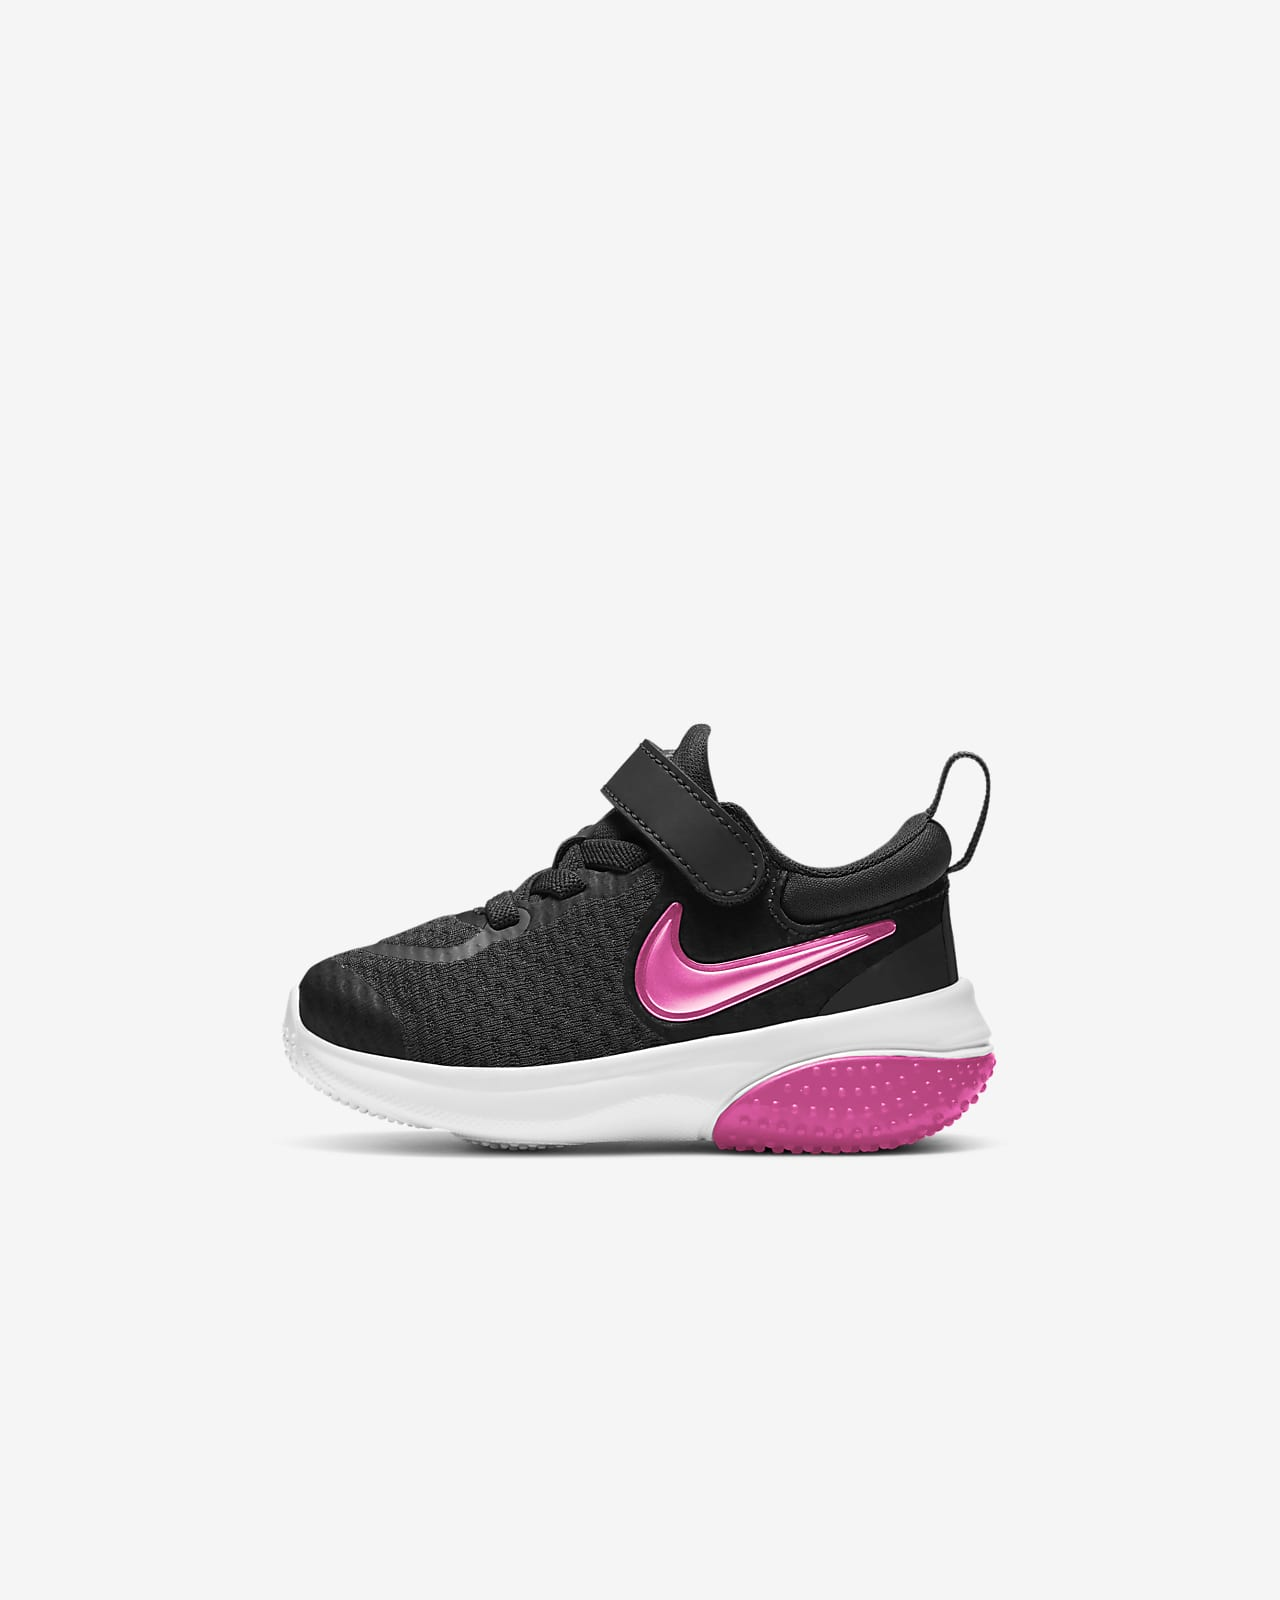 Nike Project Pod Baby/Toddler Shoe